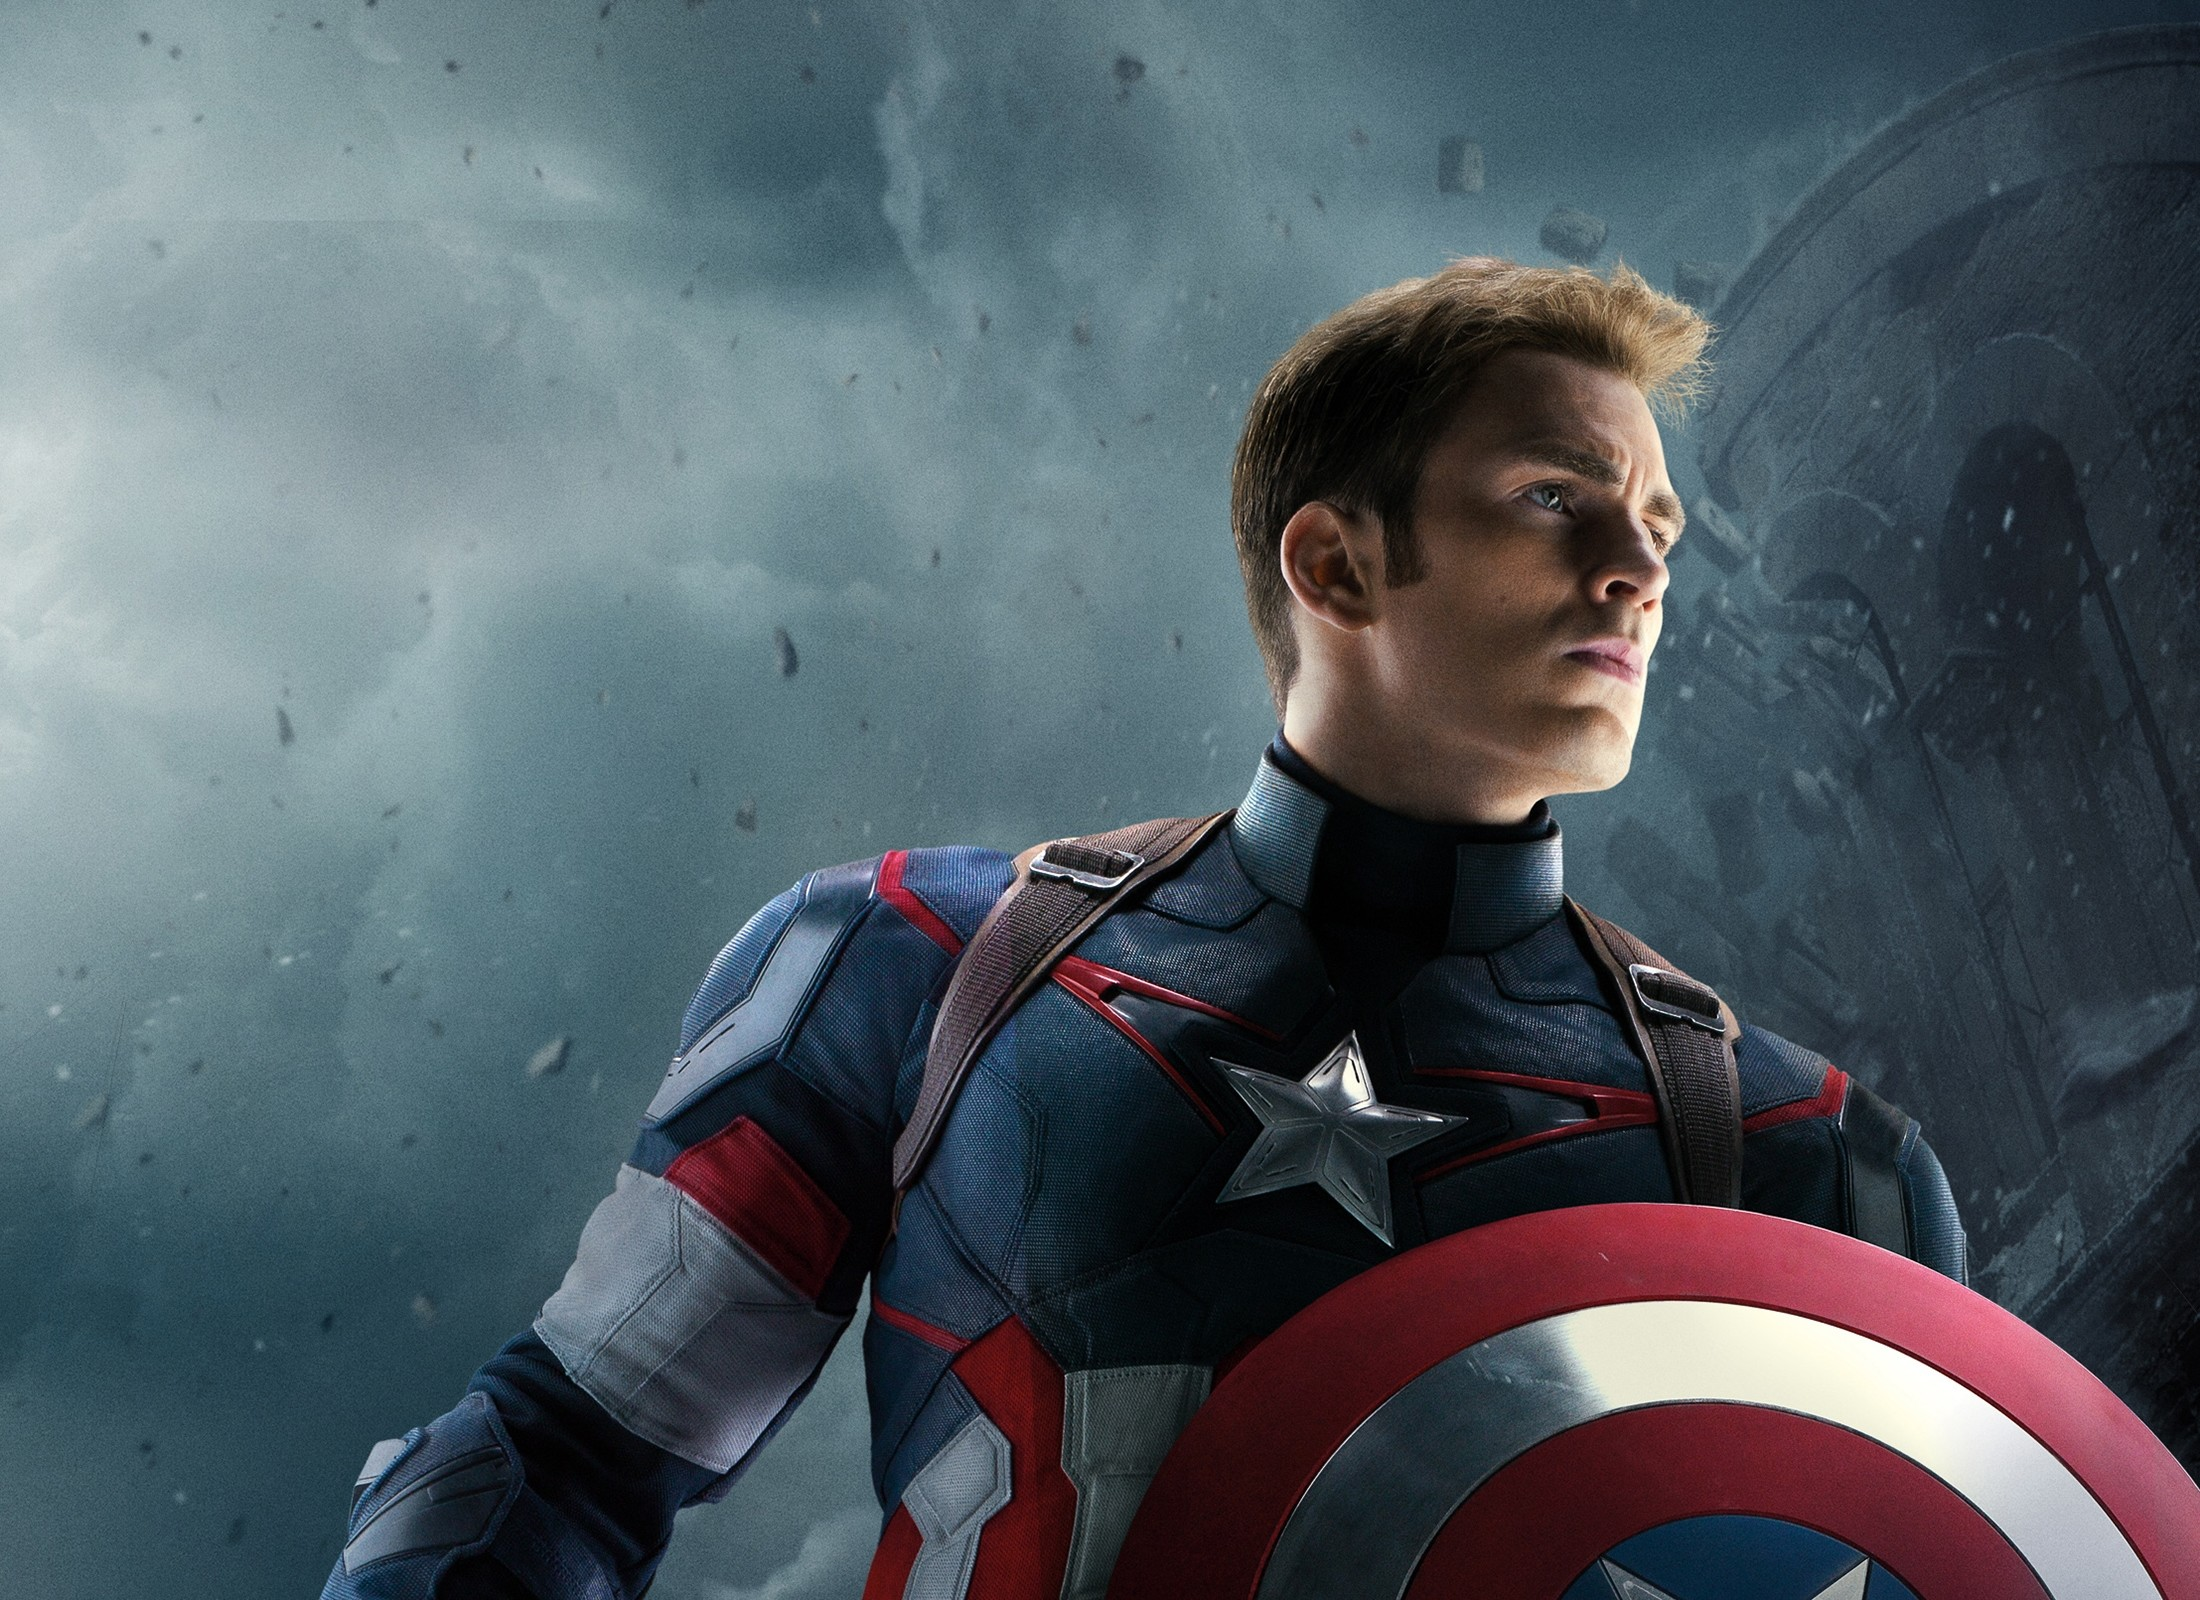 … hd wallpaper backgrounds; captain america wallpapers free download …